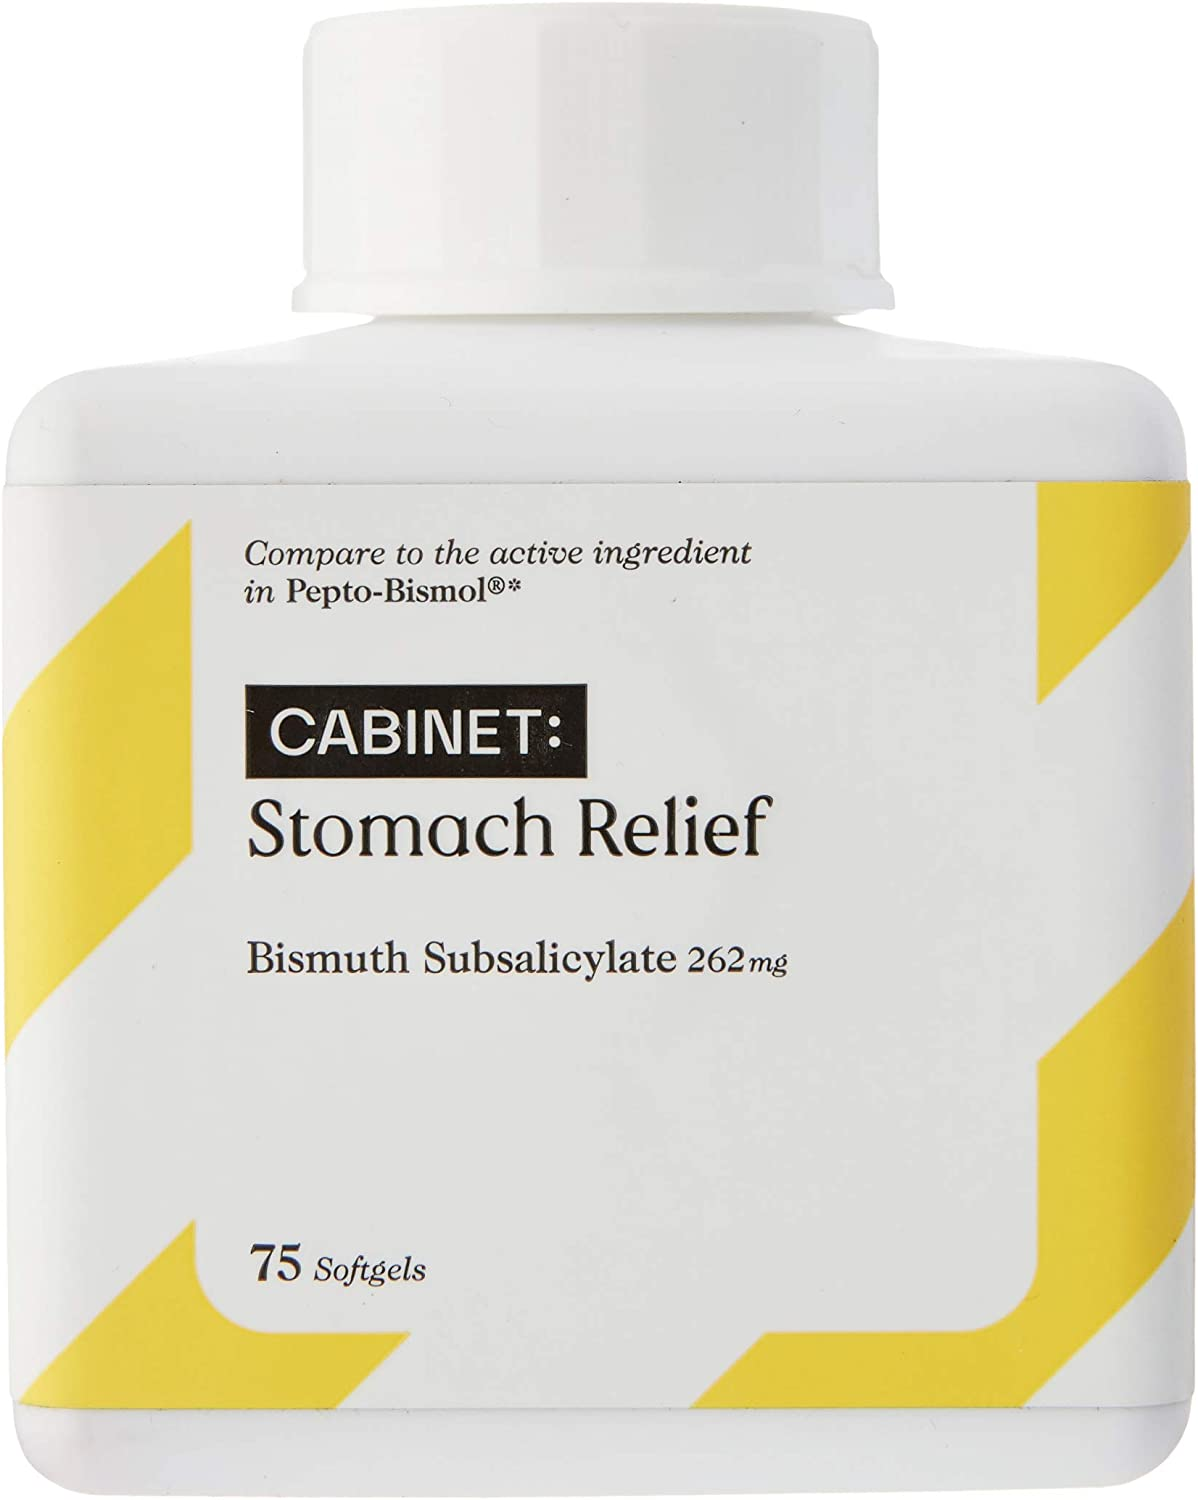 Cabinet Upset Stomach Relief Liquid Softgels, 75 Count, 262 mg Anti Diarrhea Medicine for Adults and Kids 12 and Up, Fast Acting Bismuth Subsalicylate Antidiarrheal: Health & Personal Care